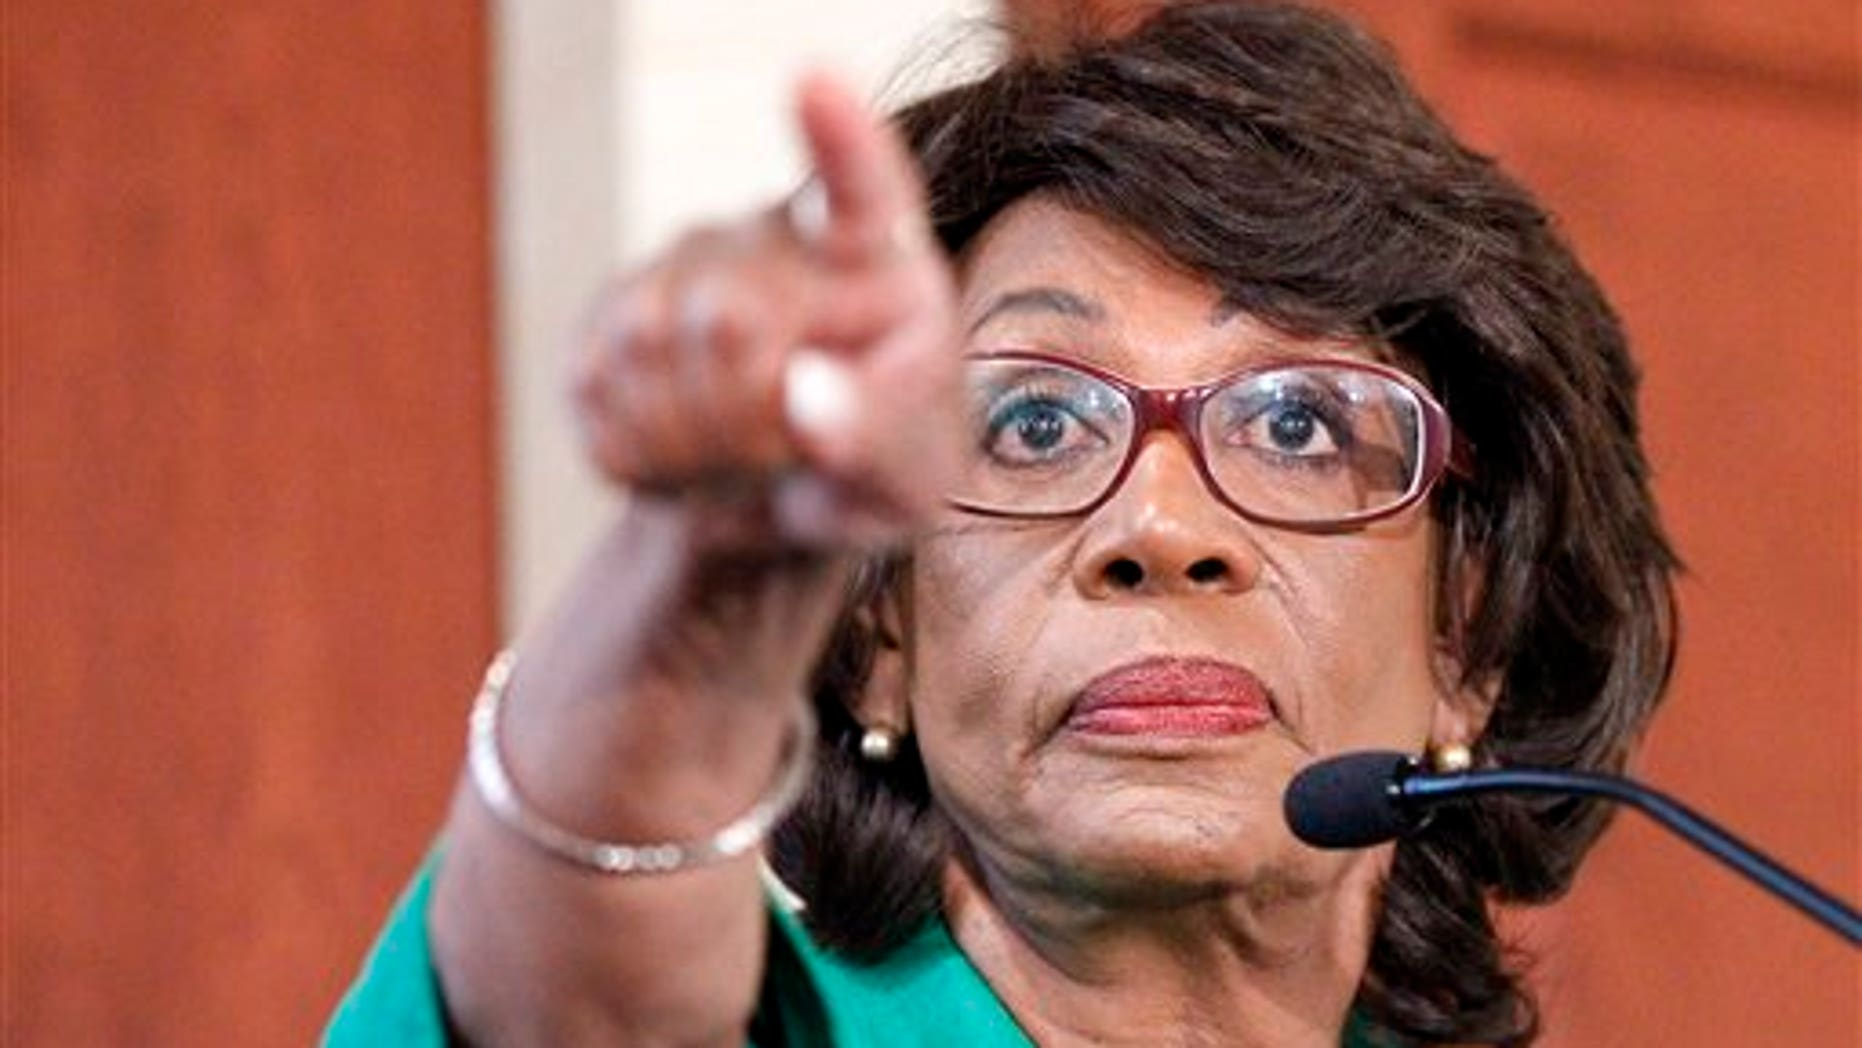 Rep. Maxine Waters, D-Calif. holds a press conference to defend herself on ethics charges, Friday, August 13, 2010. (AP Photo/Pablo Martinez Monsivais)